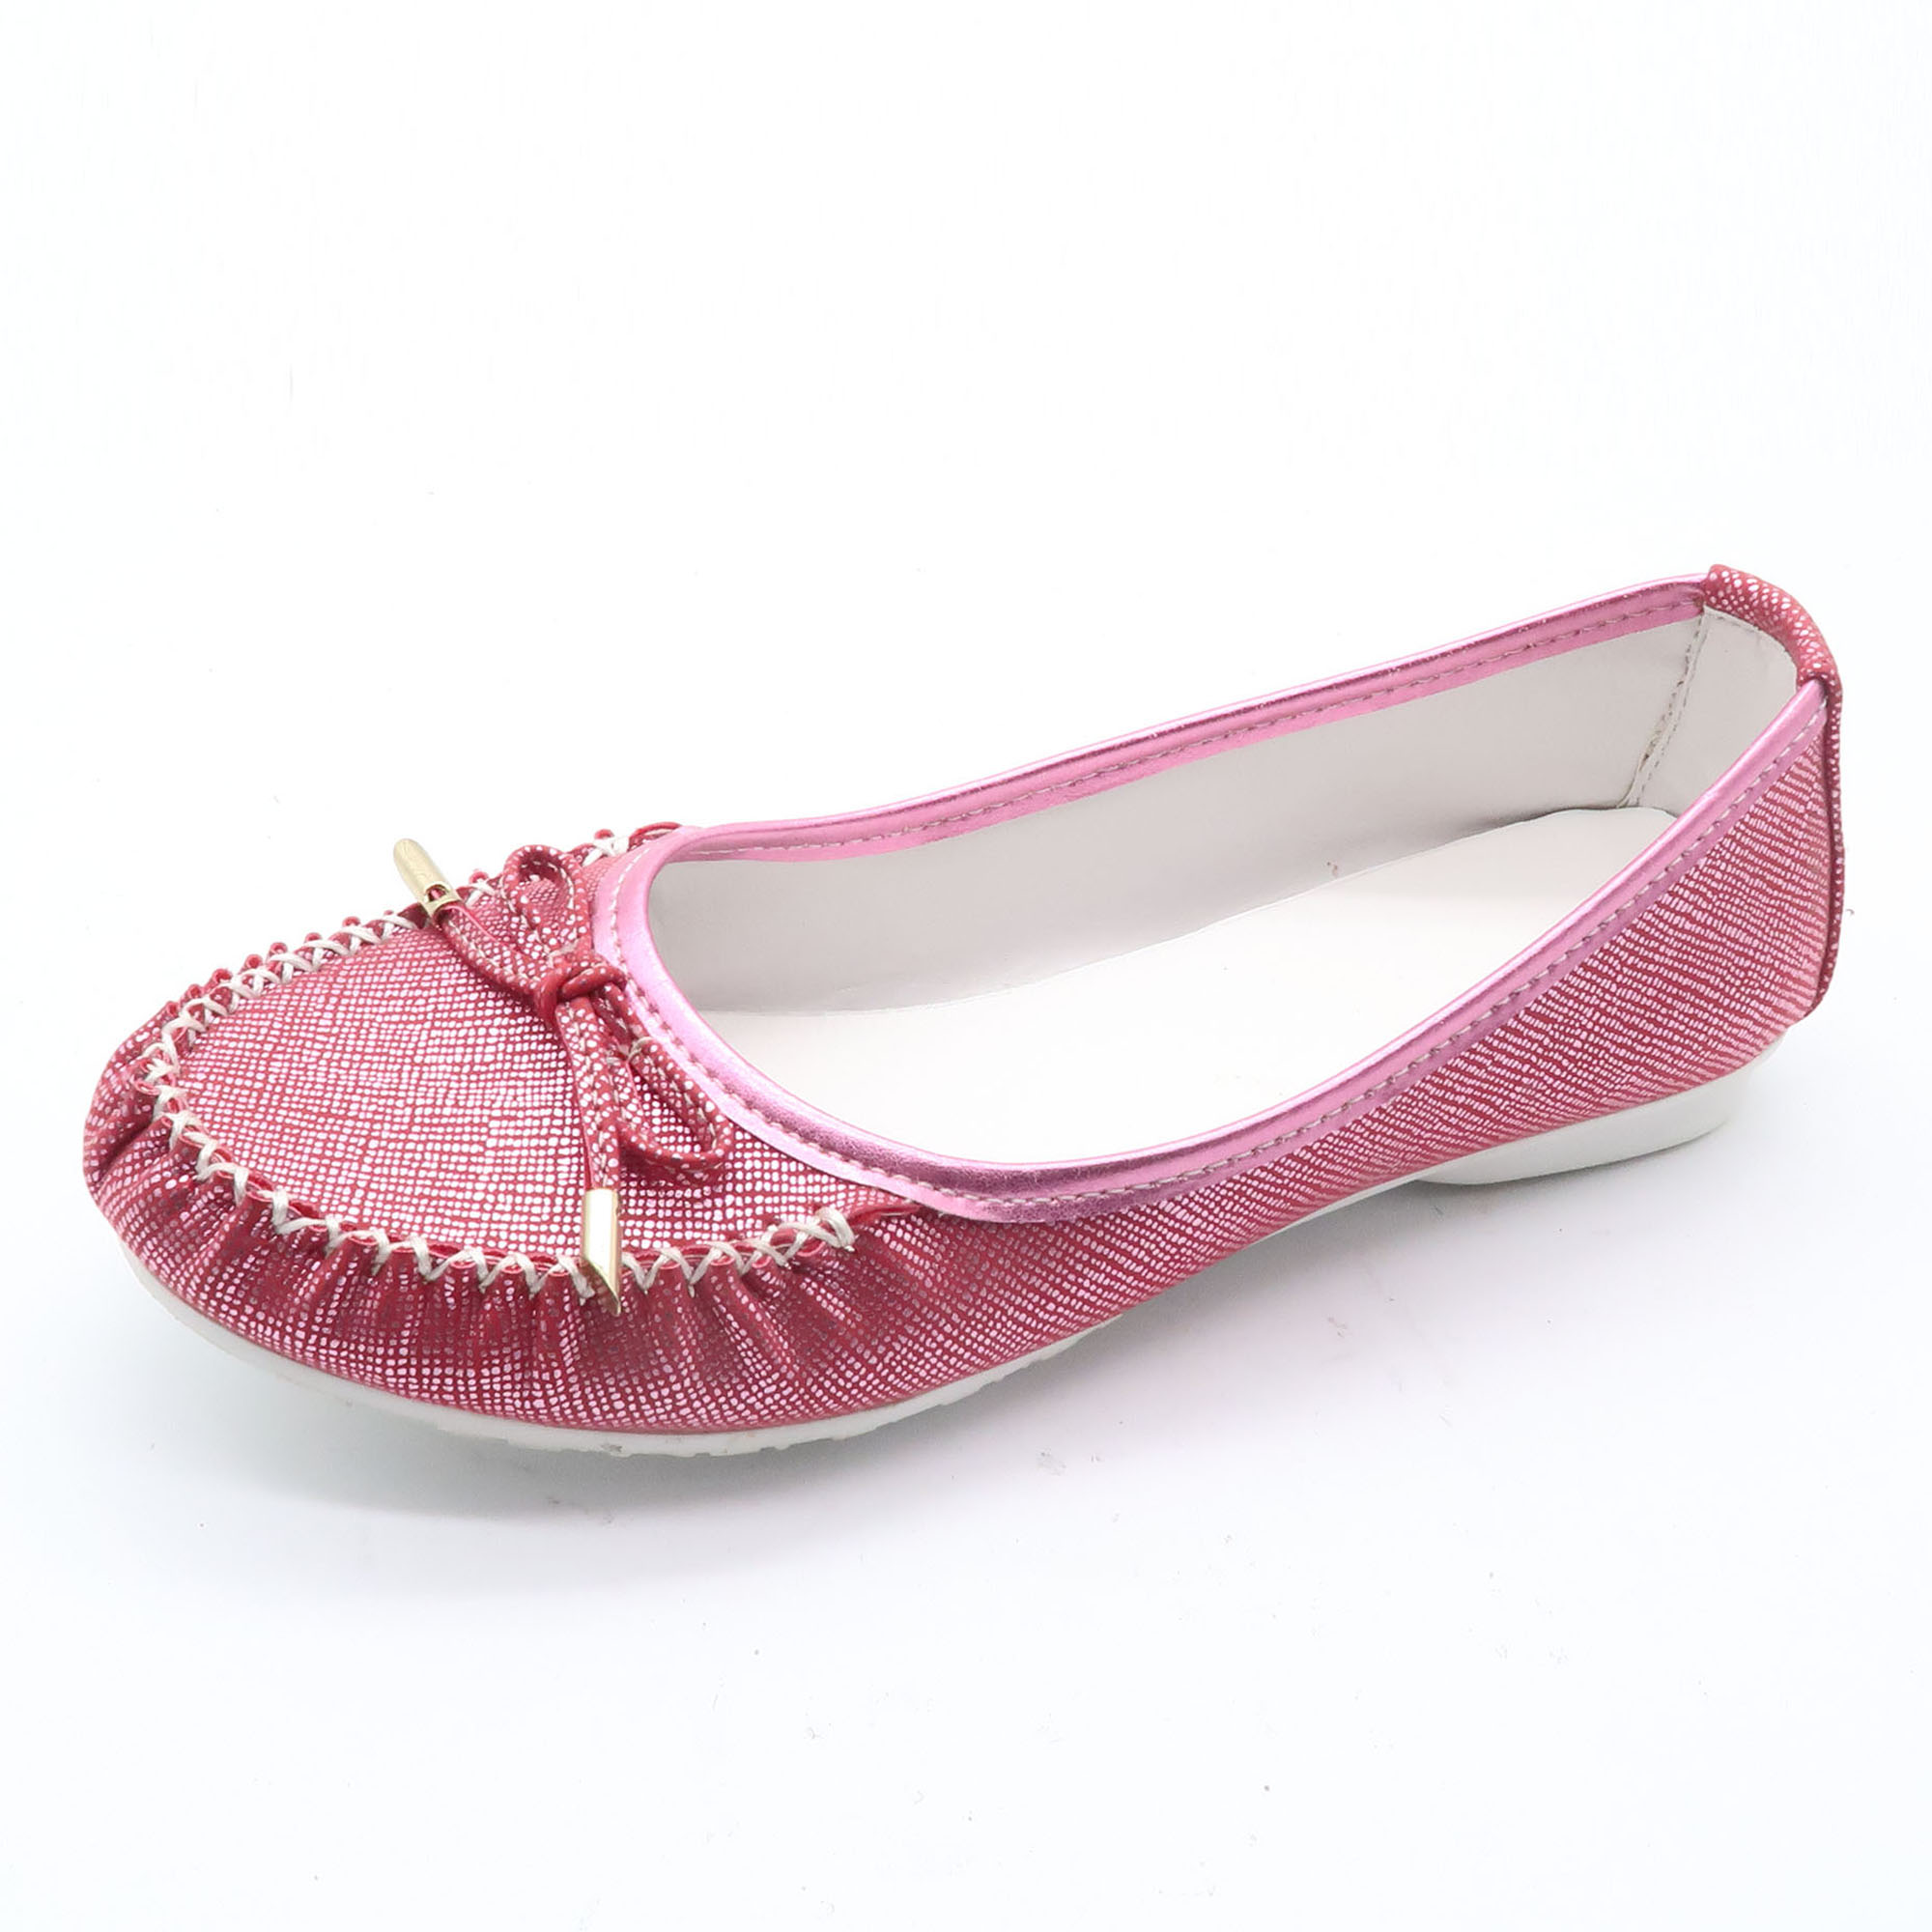 Newest Deign Women Leather Moccasin Lady Shoes